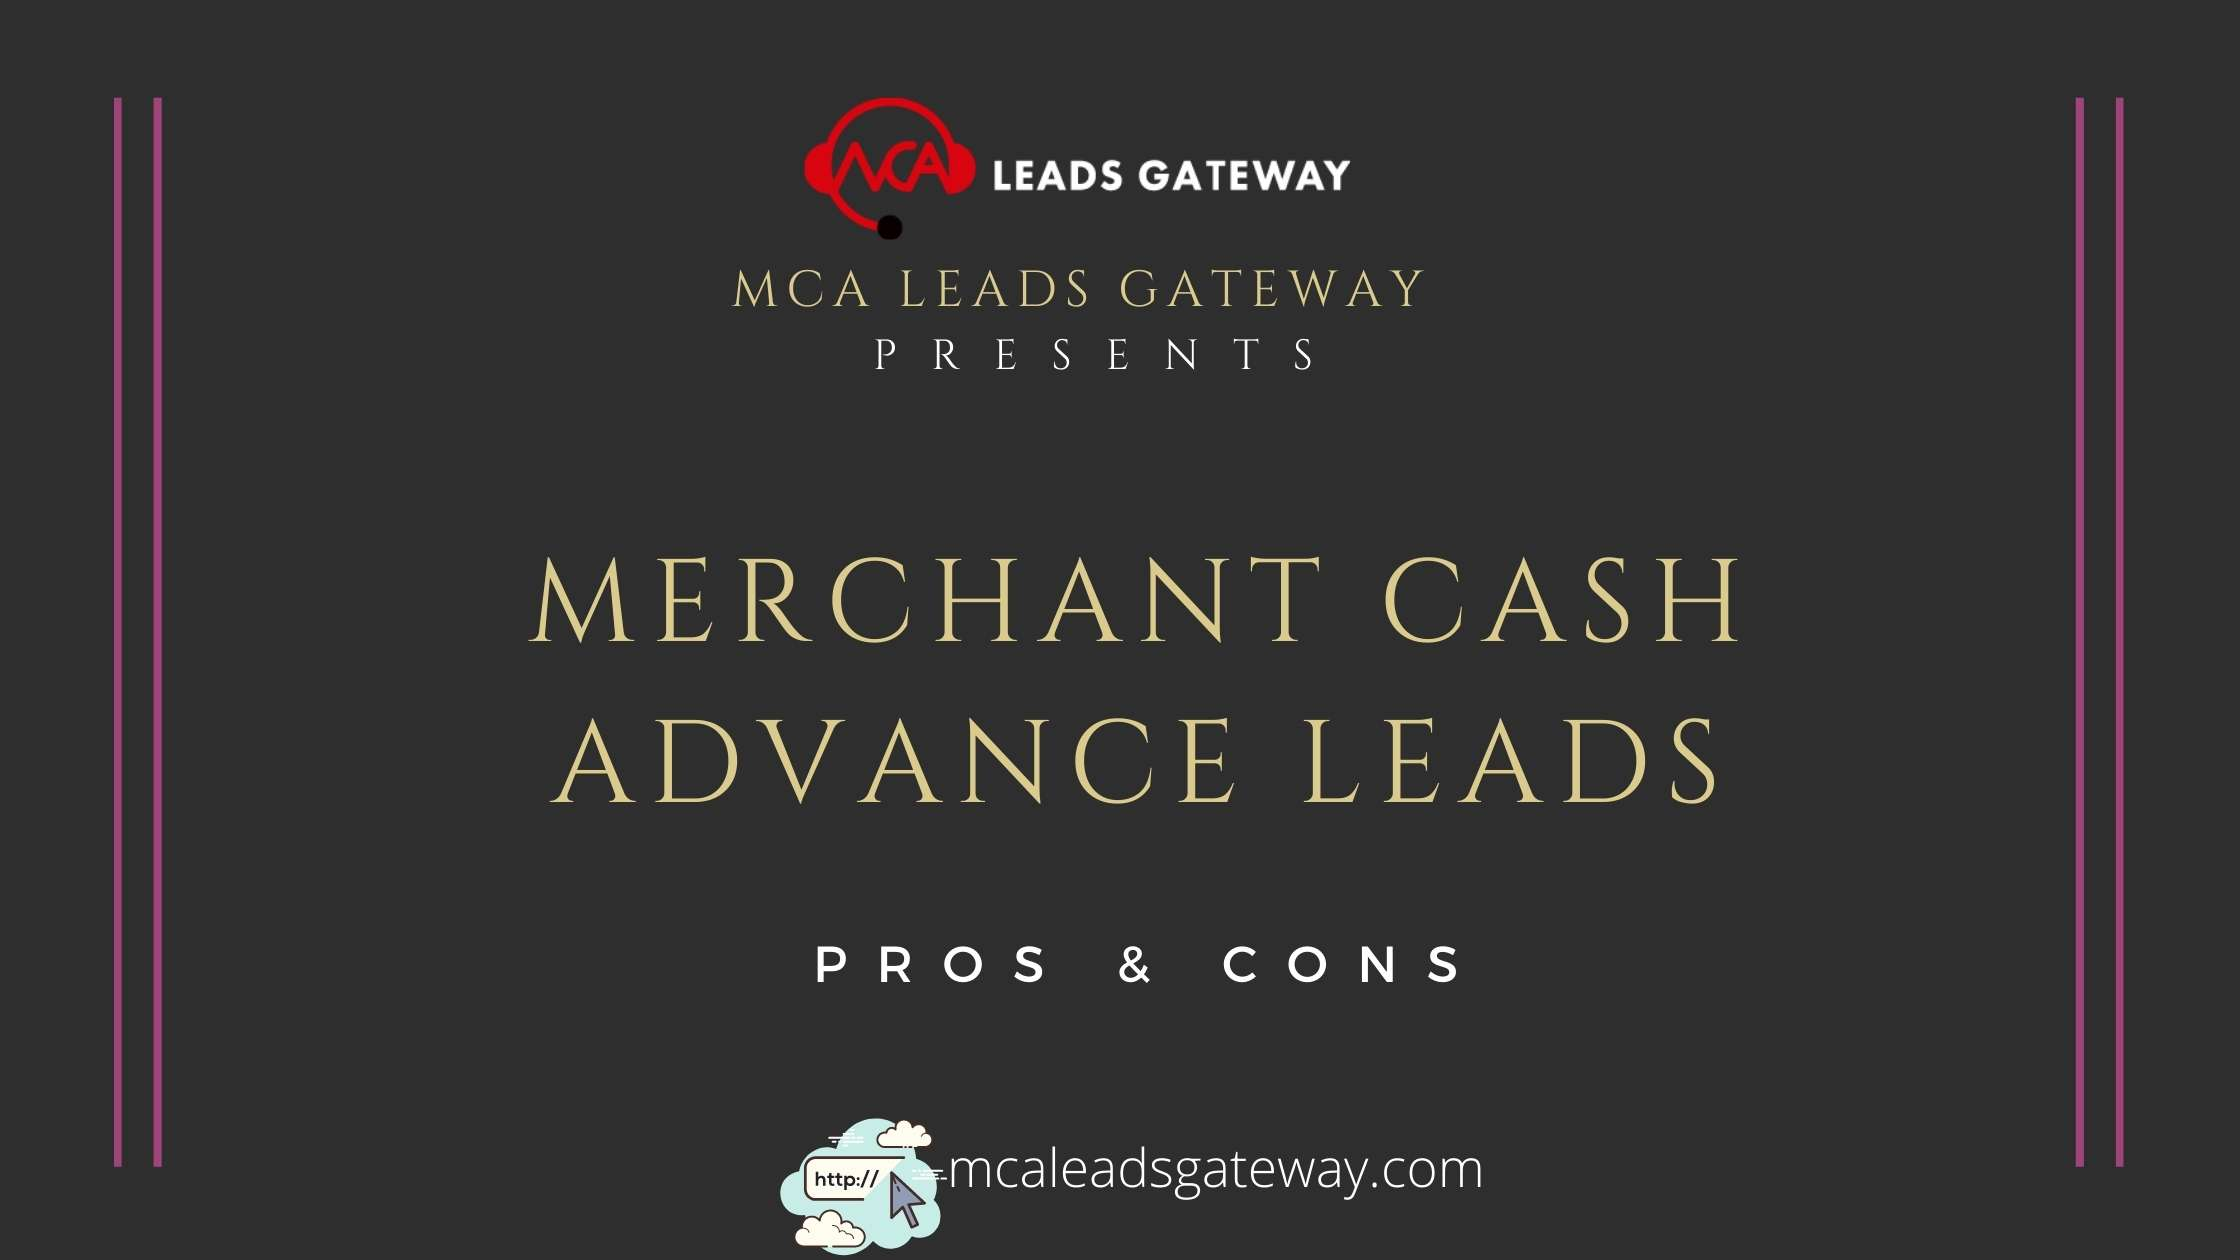 Merchant Cash Advance Leads from MCA LEADS Gateway